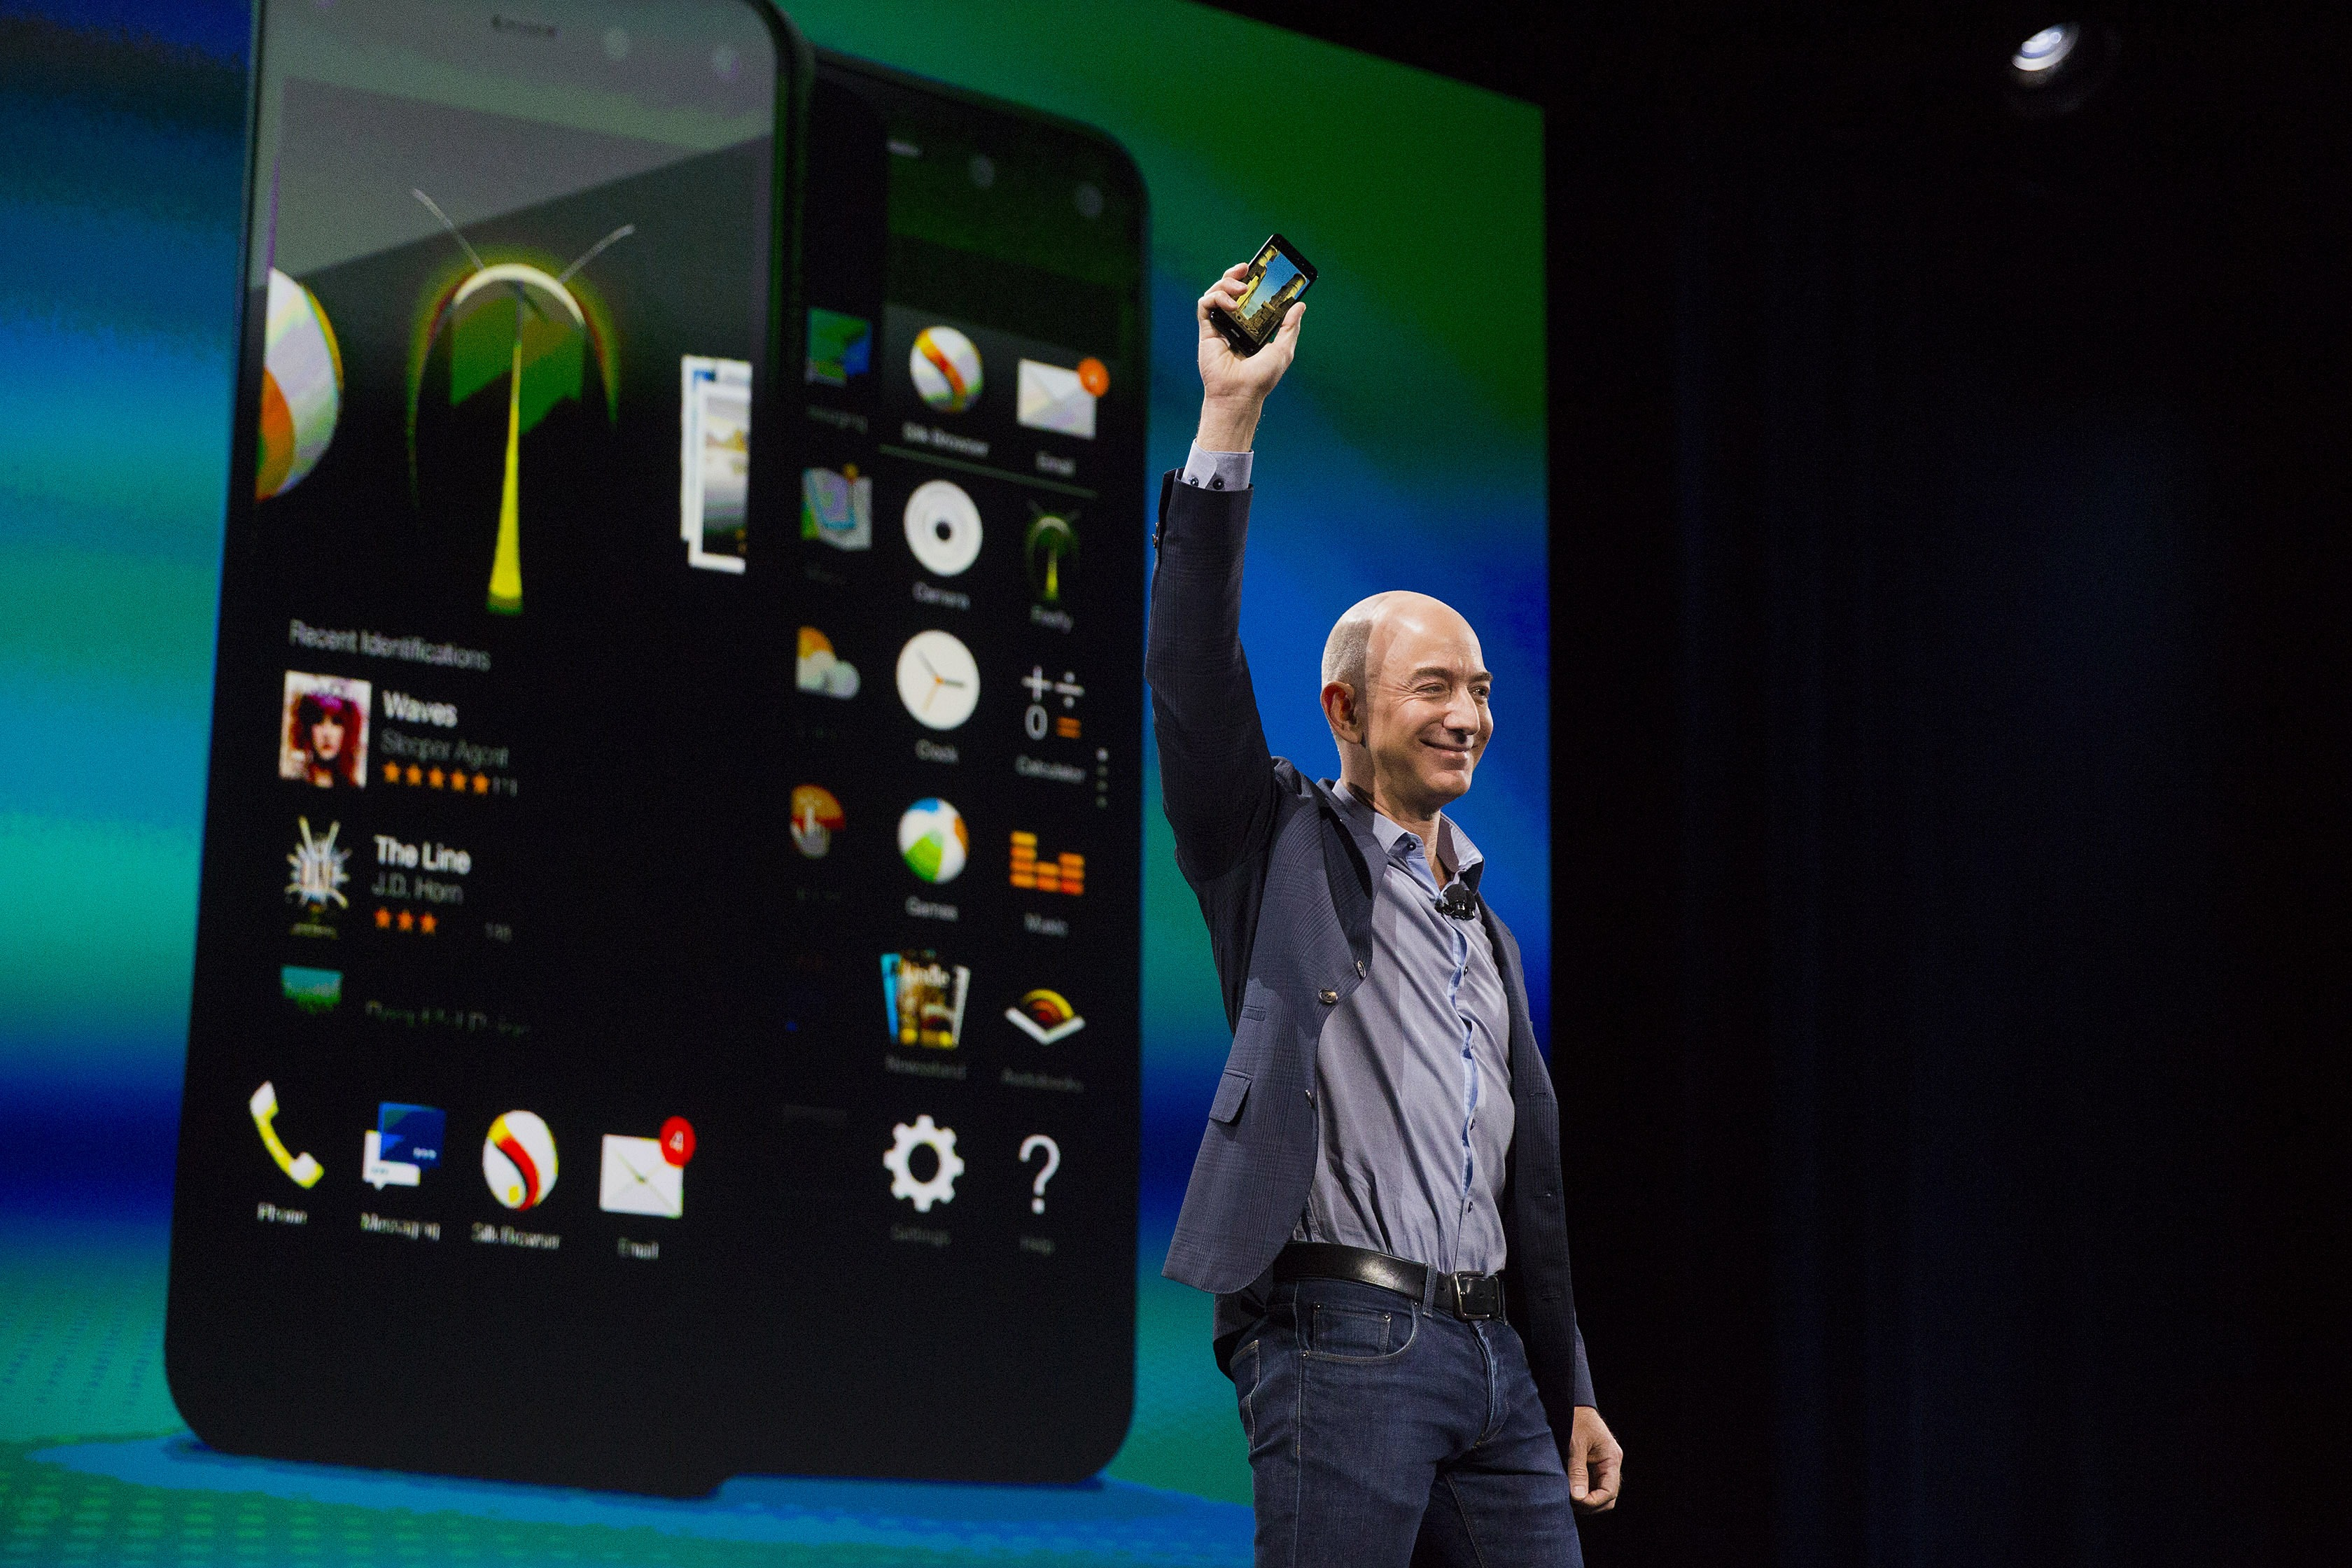 Amazon CEO Bezos Introduces Smartphone to Take on Apple, Samsung